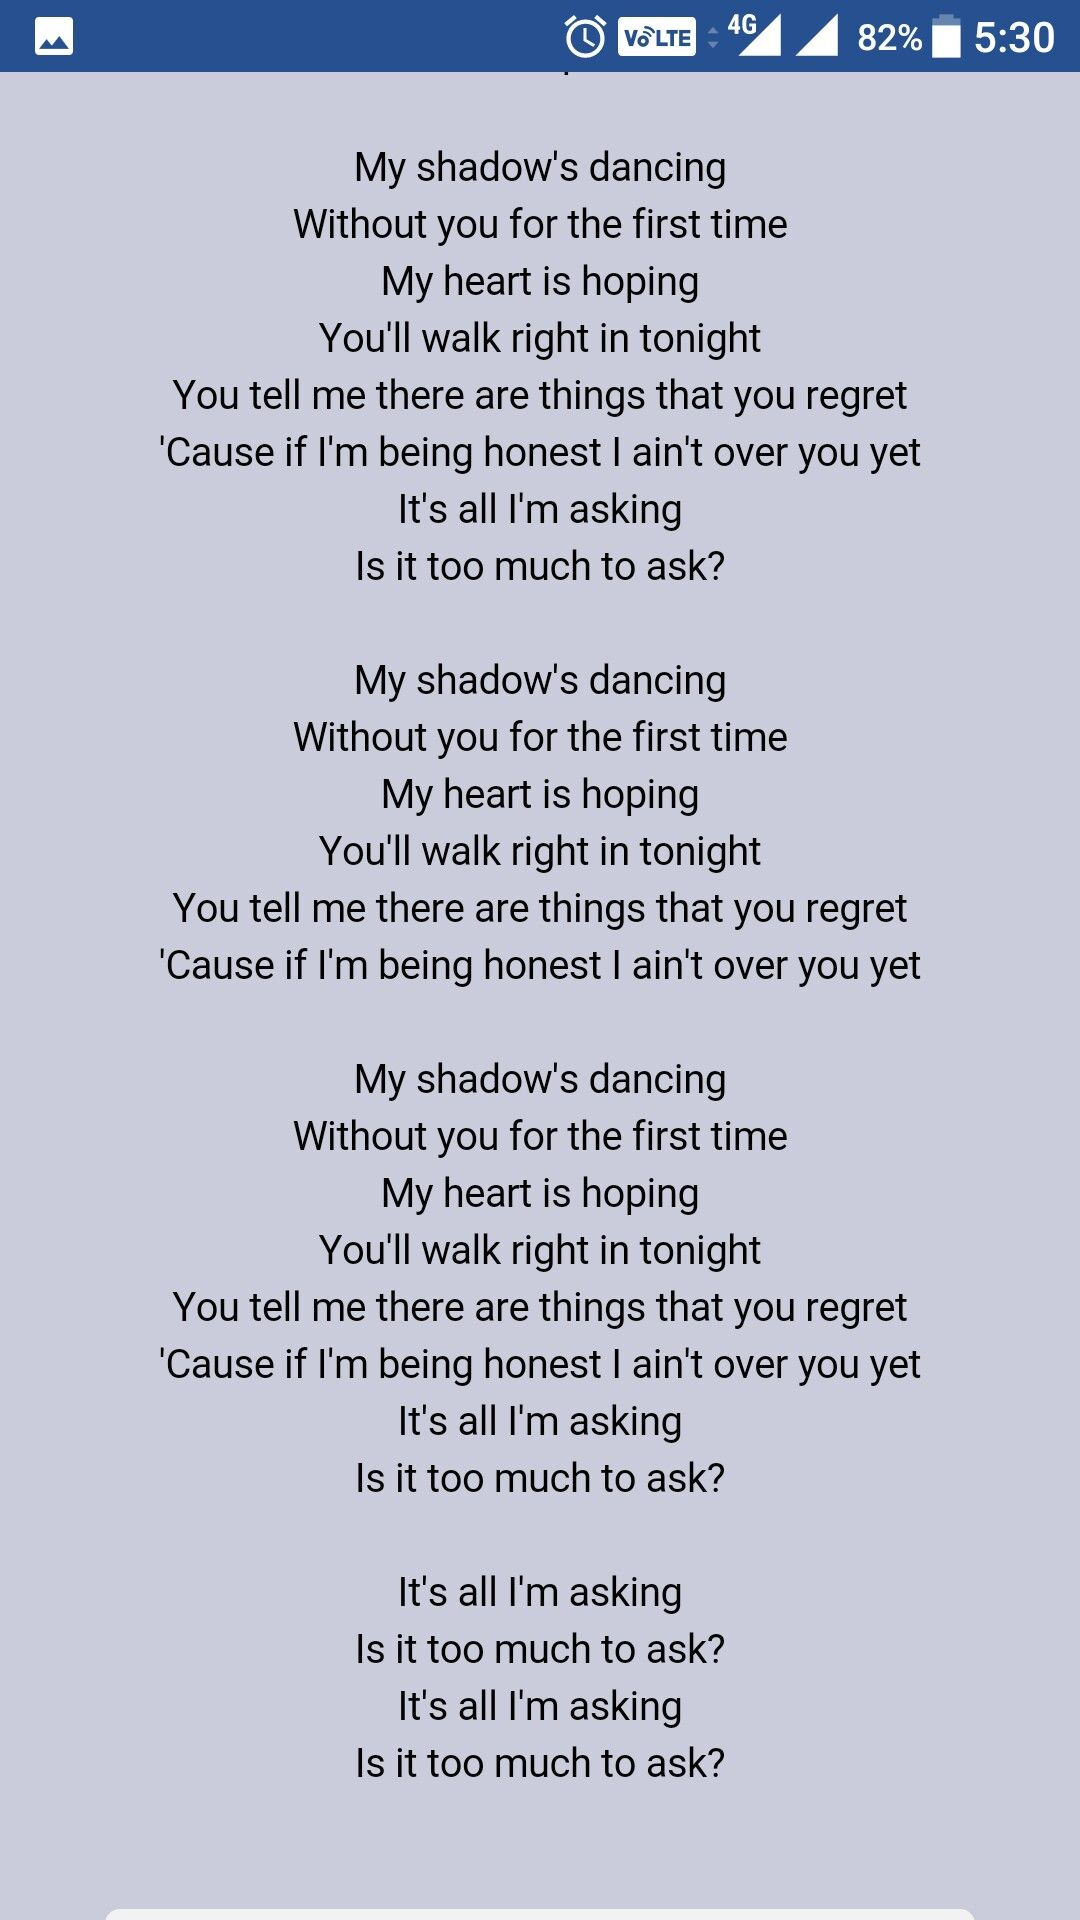 Too Much To Ask // Niall Horan One direction lyrics